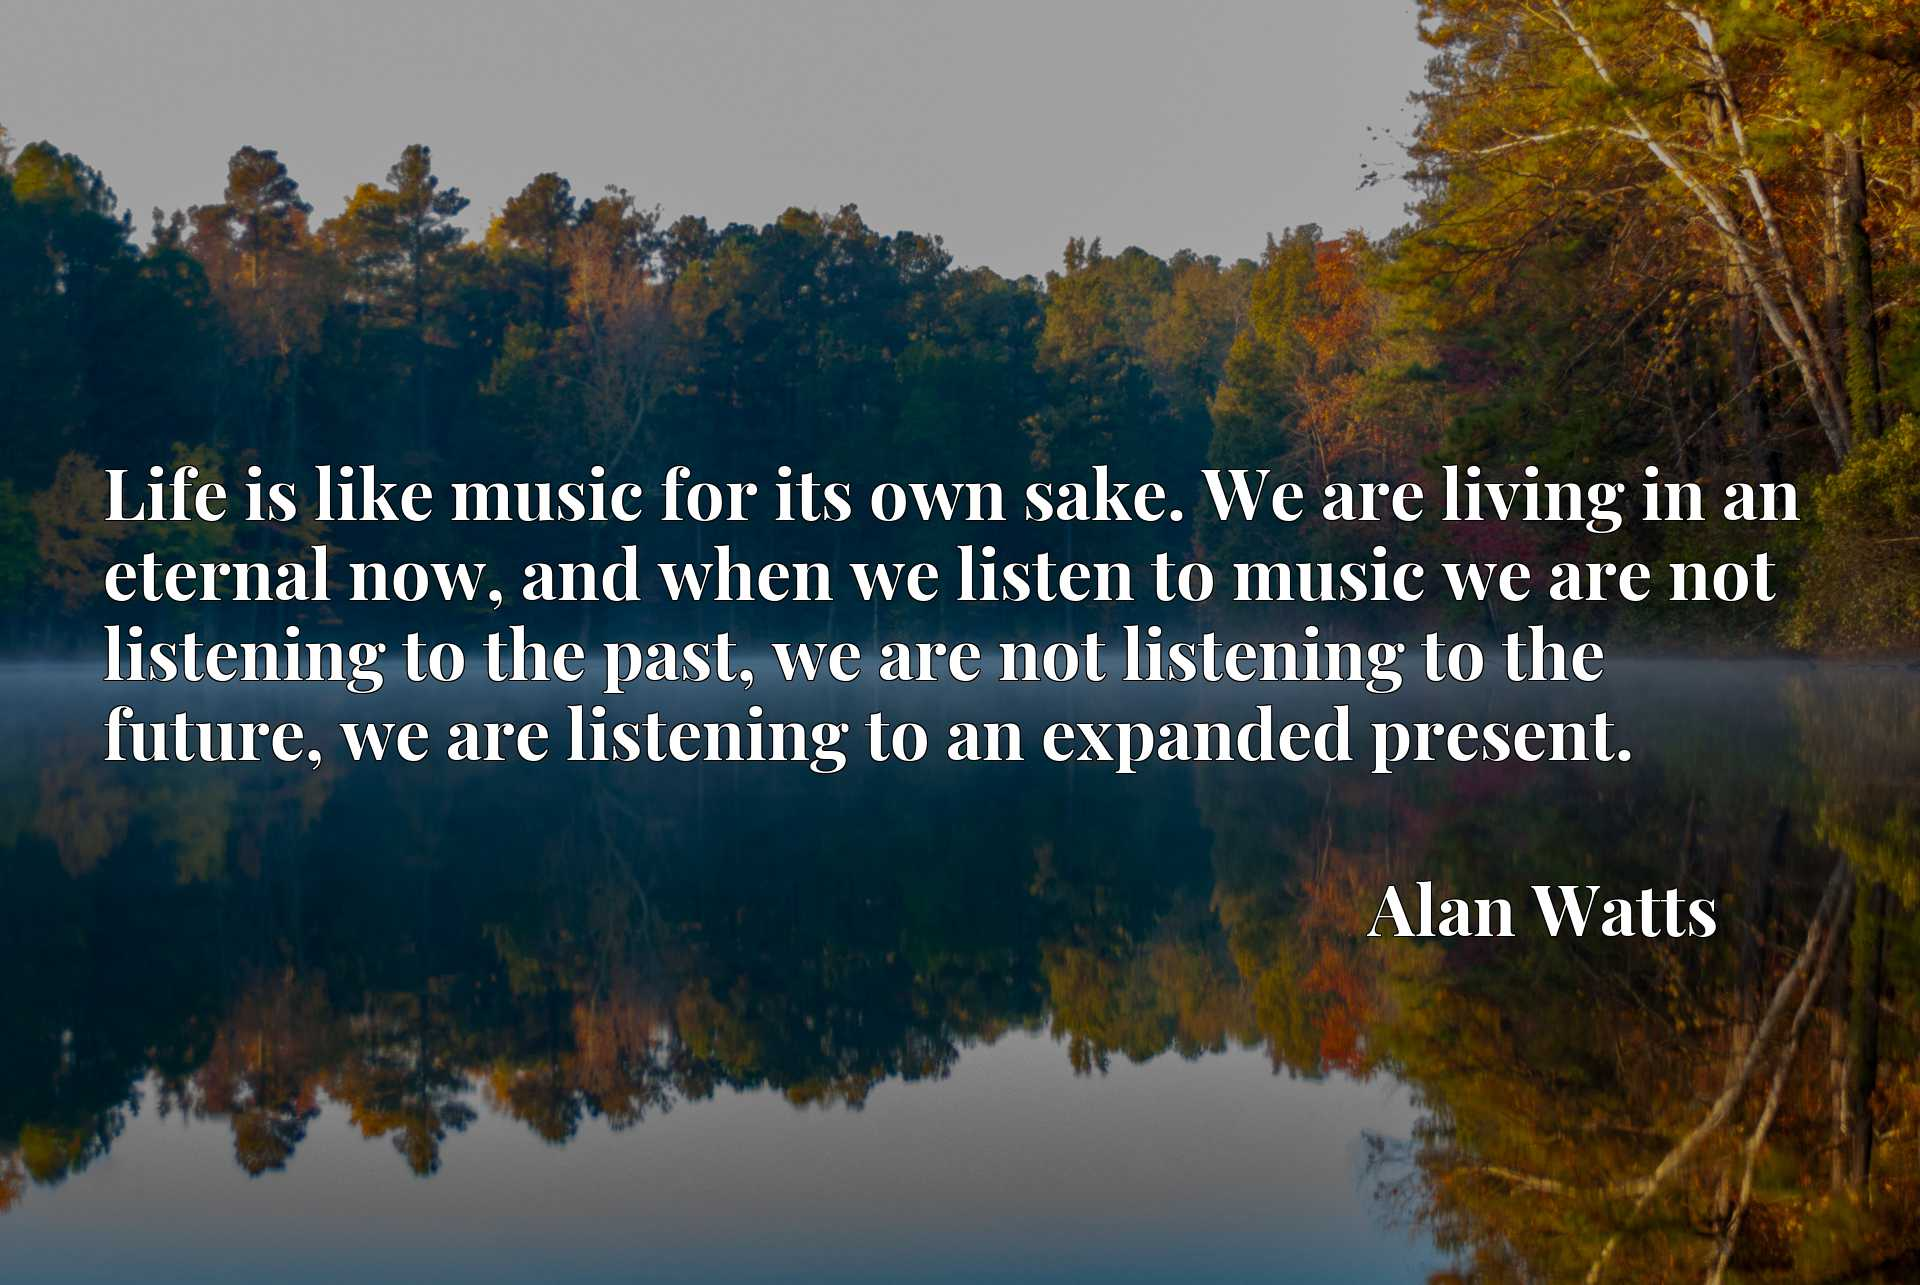 Life is like music for its own sake. We are living in an eternal now, and when we listen to music we are not listening to the past, we are not listening to the future, we are listening to an expanded present.